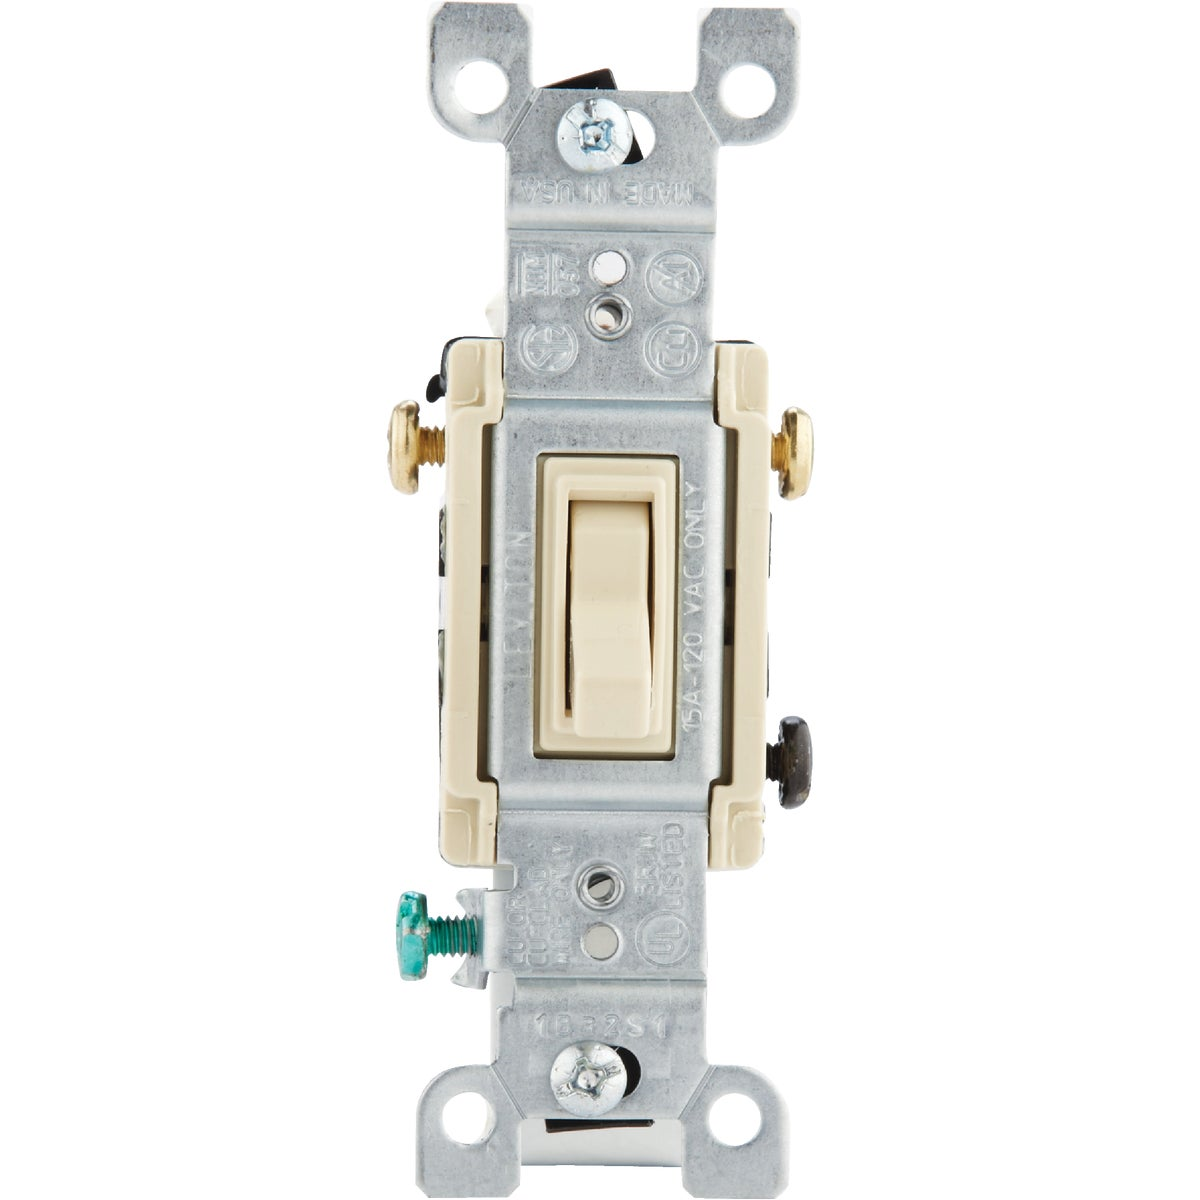 IV 3-WAY GRND SWITCH - 1453-2ICP by Leviton Mfg Co